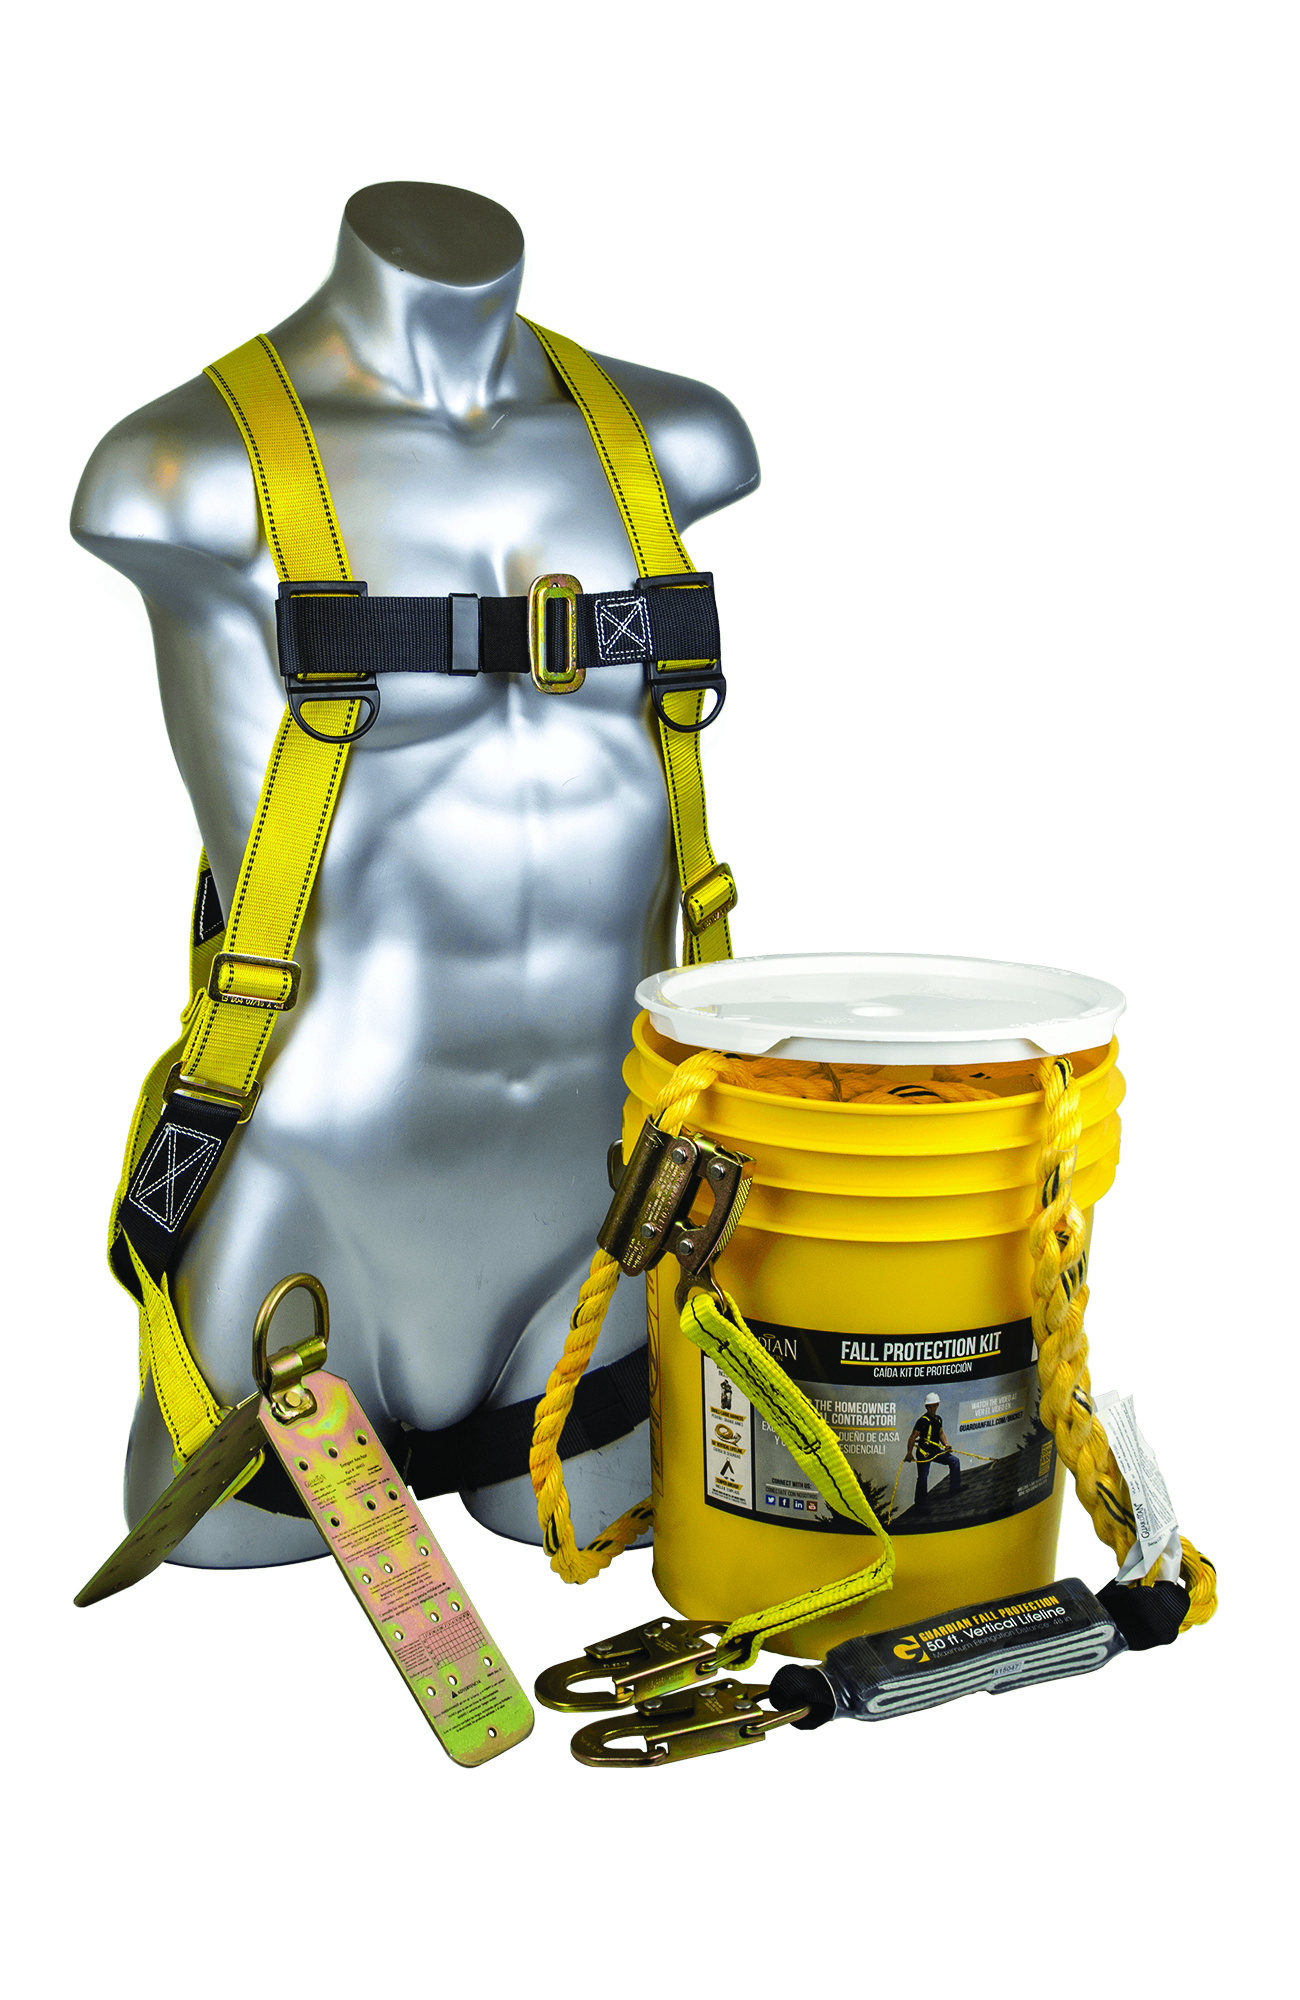 00815 - Bucket of Safe-Tie w/ Temper Anchor-Bucket of Safe-Tie w/ Temper Anchor-Size: S-L, Bucket of Safe-Tie----UOM: 1/EA